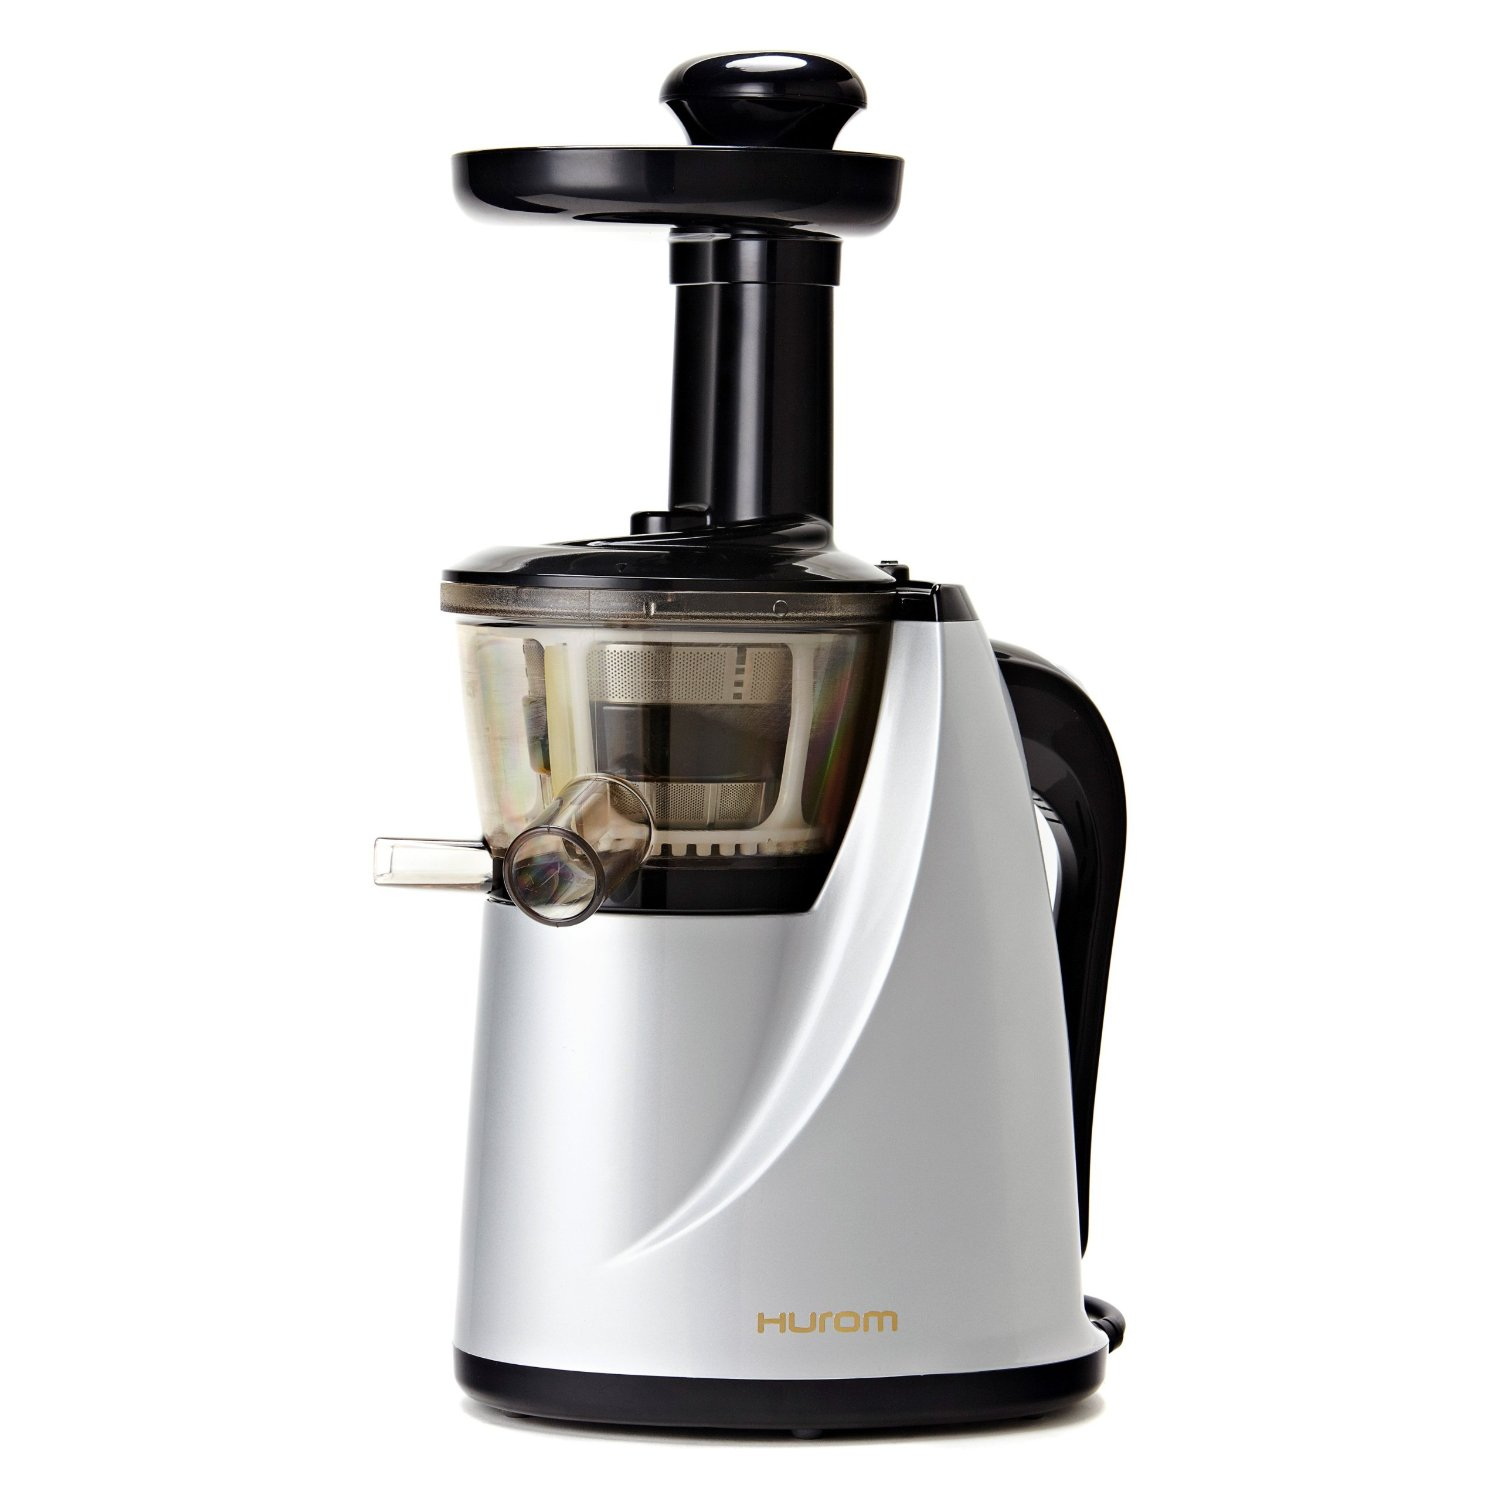 Slow Juicer Vs Cold Press : Hurom HU-100 Masticating Slow Juicer Review - Best Cold Press Juicers